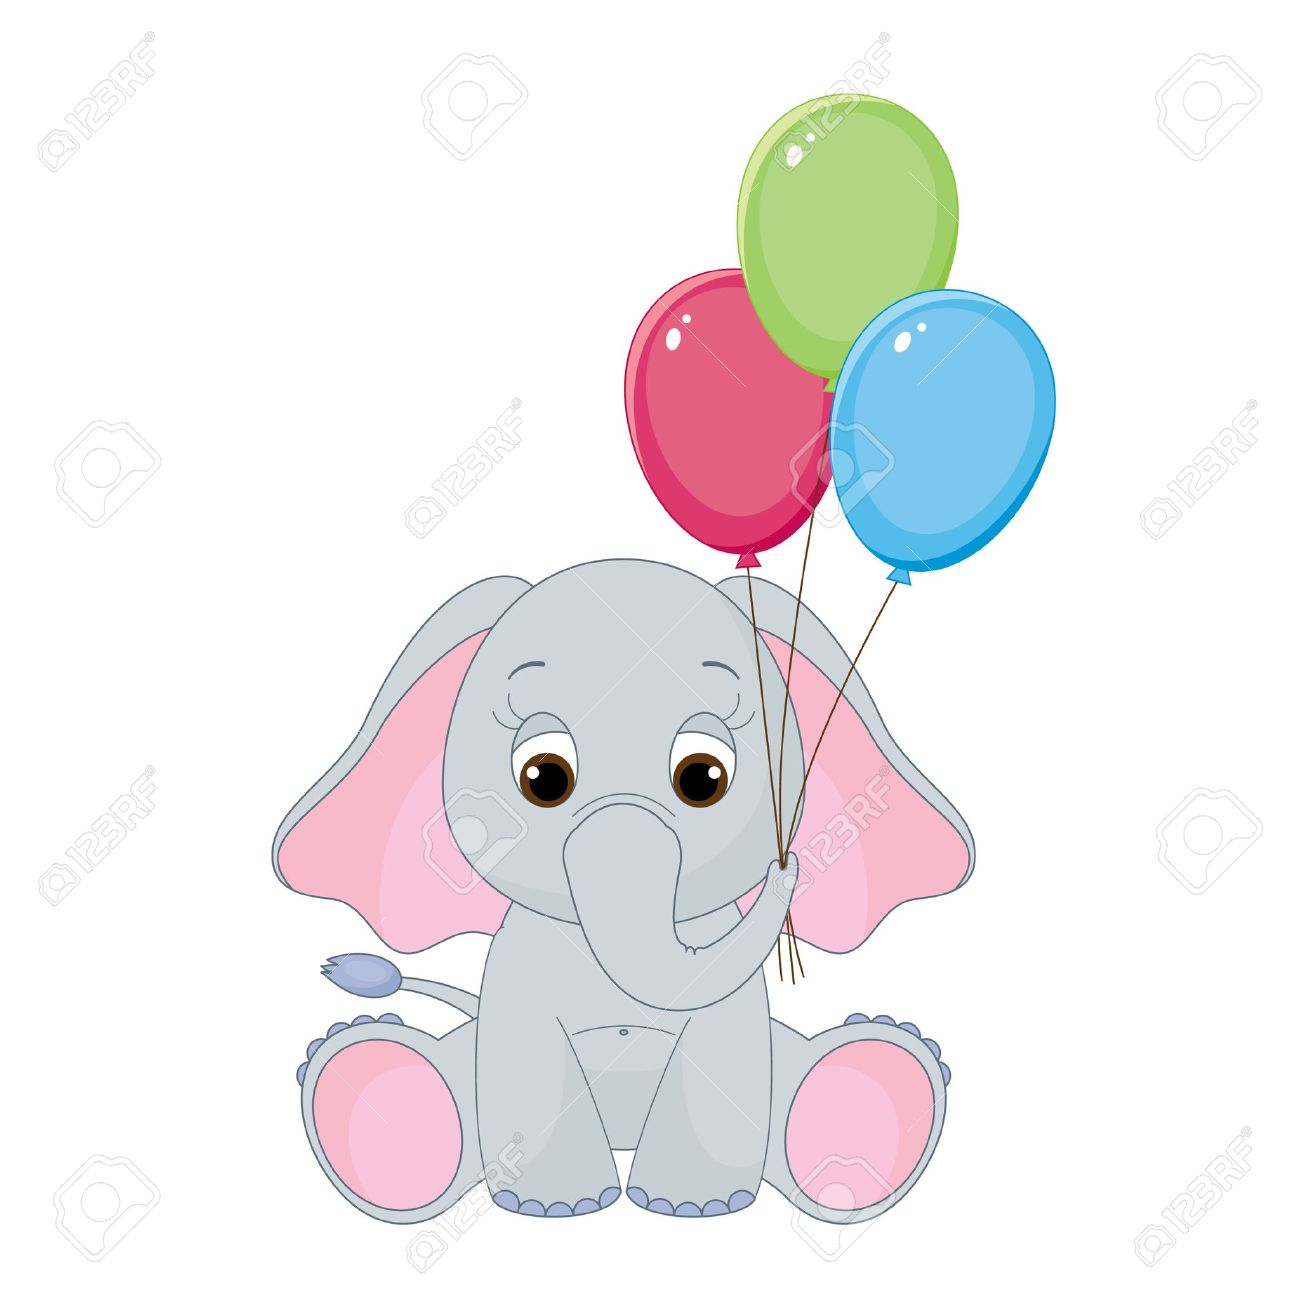 cute baby elephant with colorful balloons isolated on white royalty